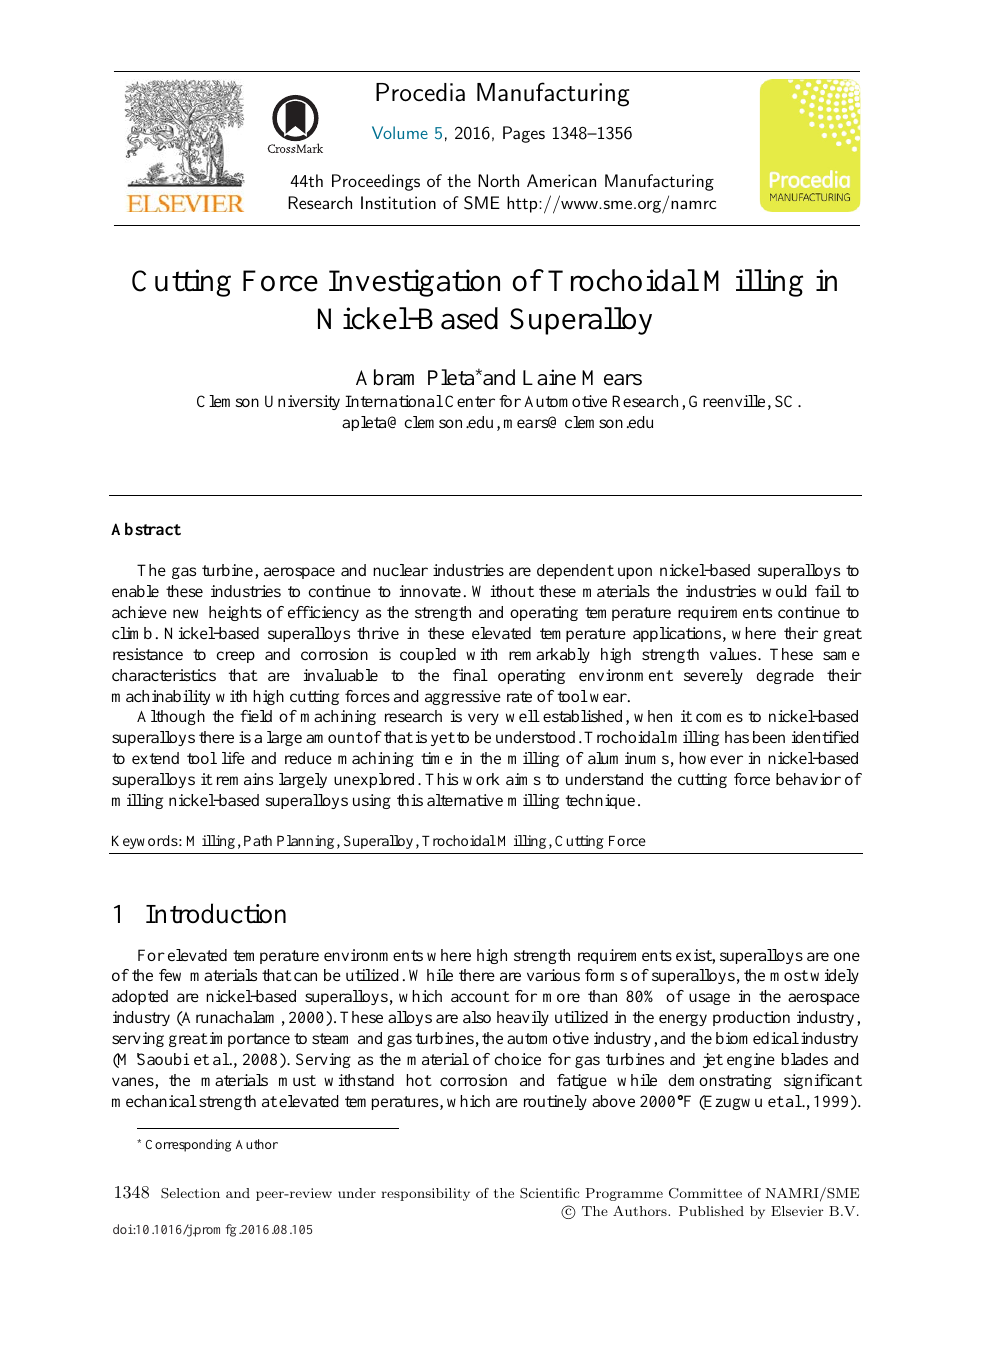 Cutting Force Investigation of Trochoidal Milling in Nickel-based